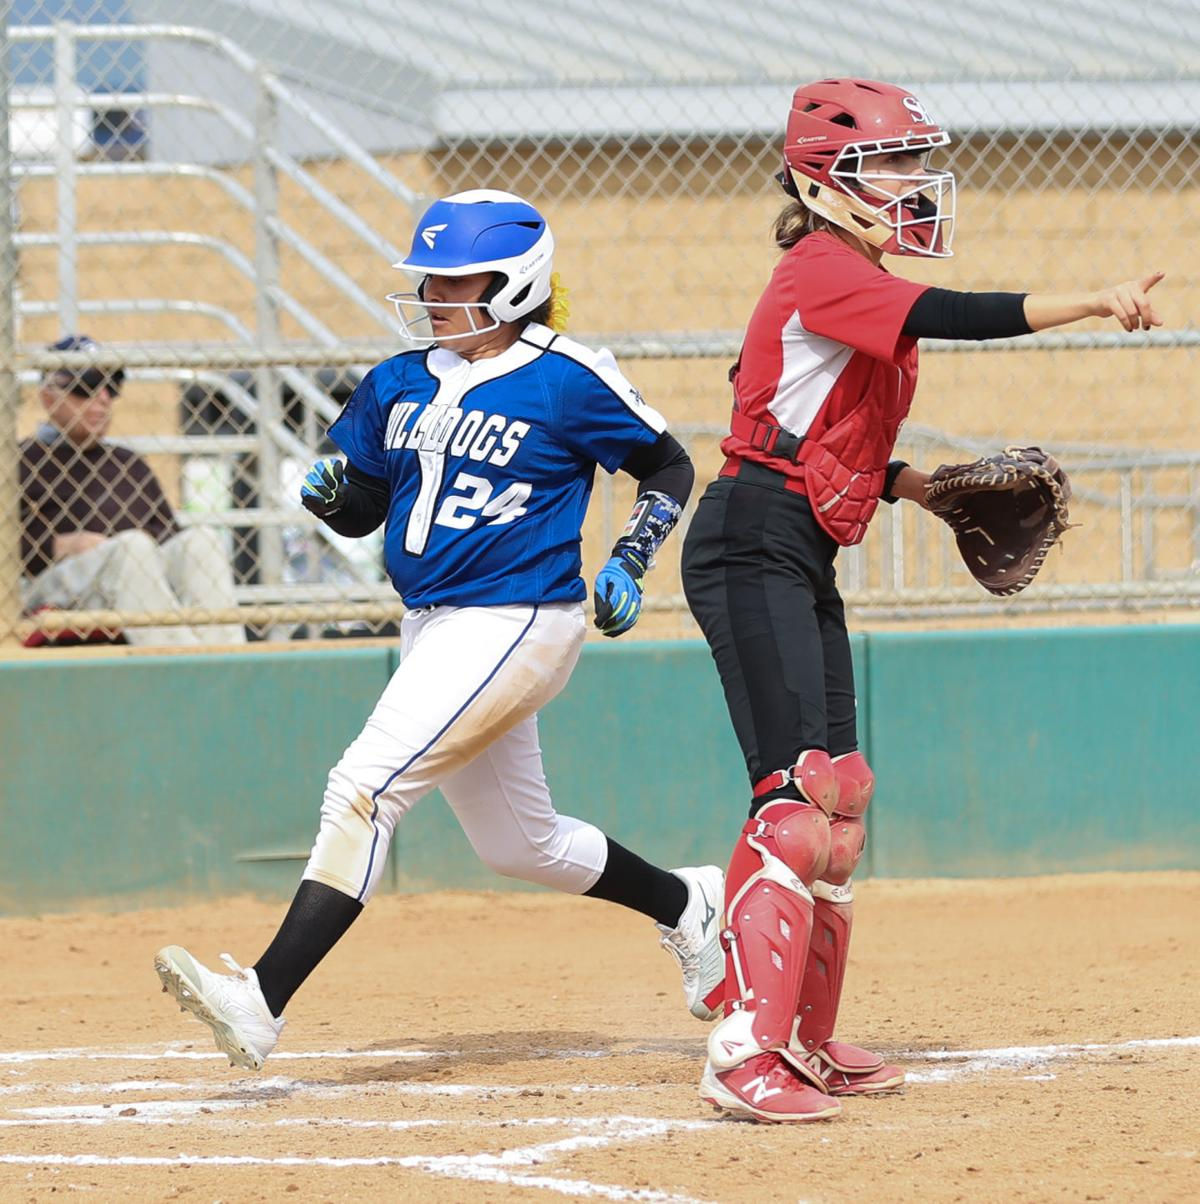 022619 AHC vs SBCC Softball 03.jpg